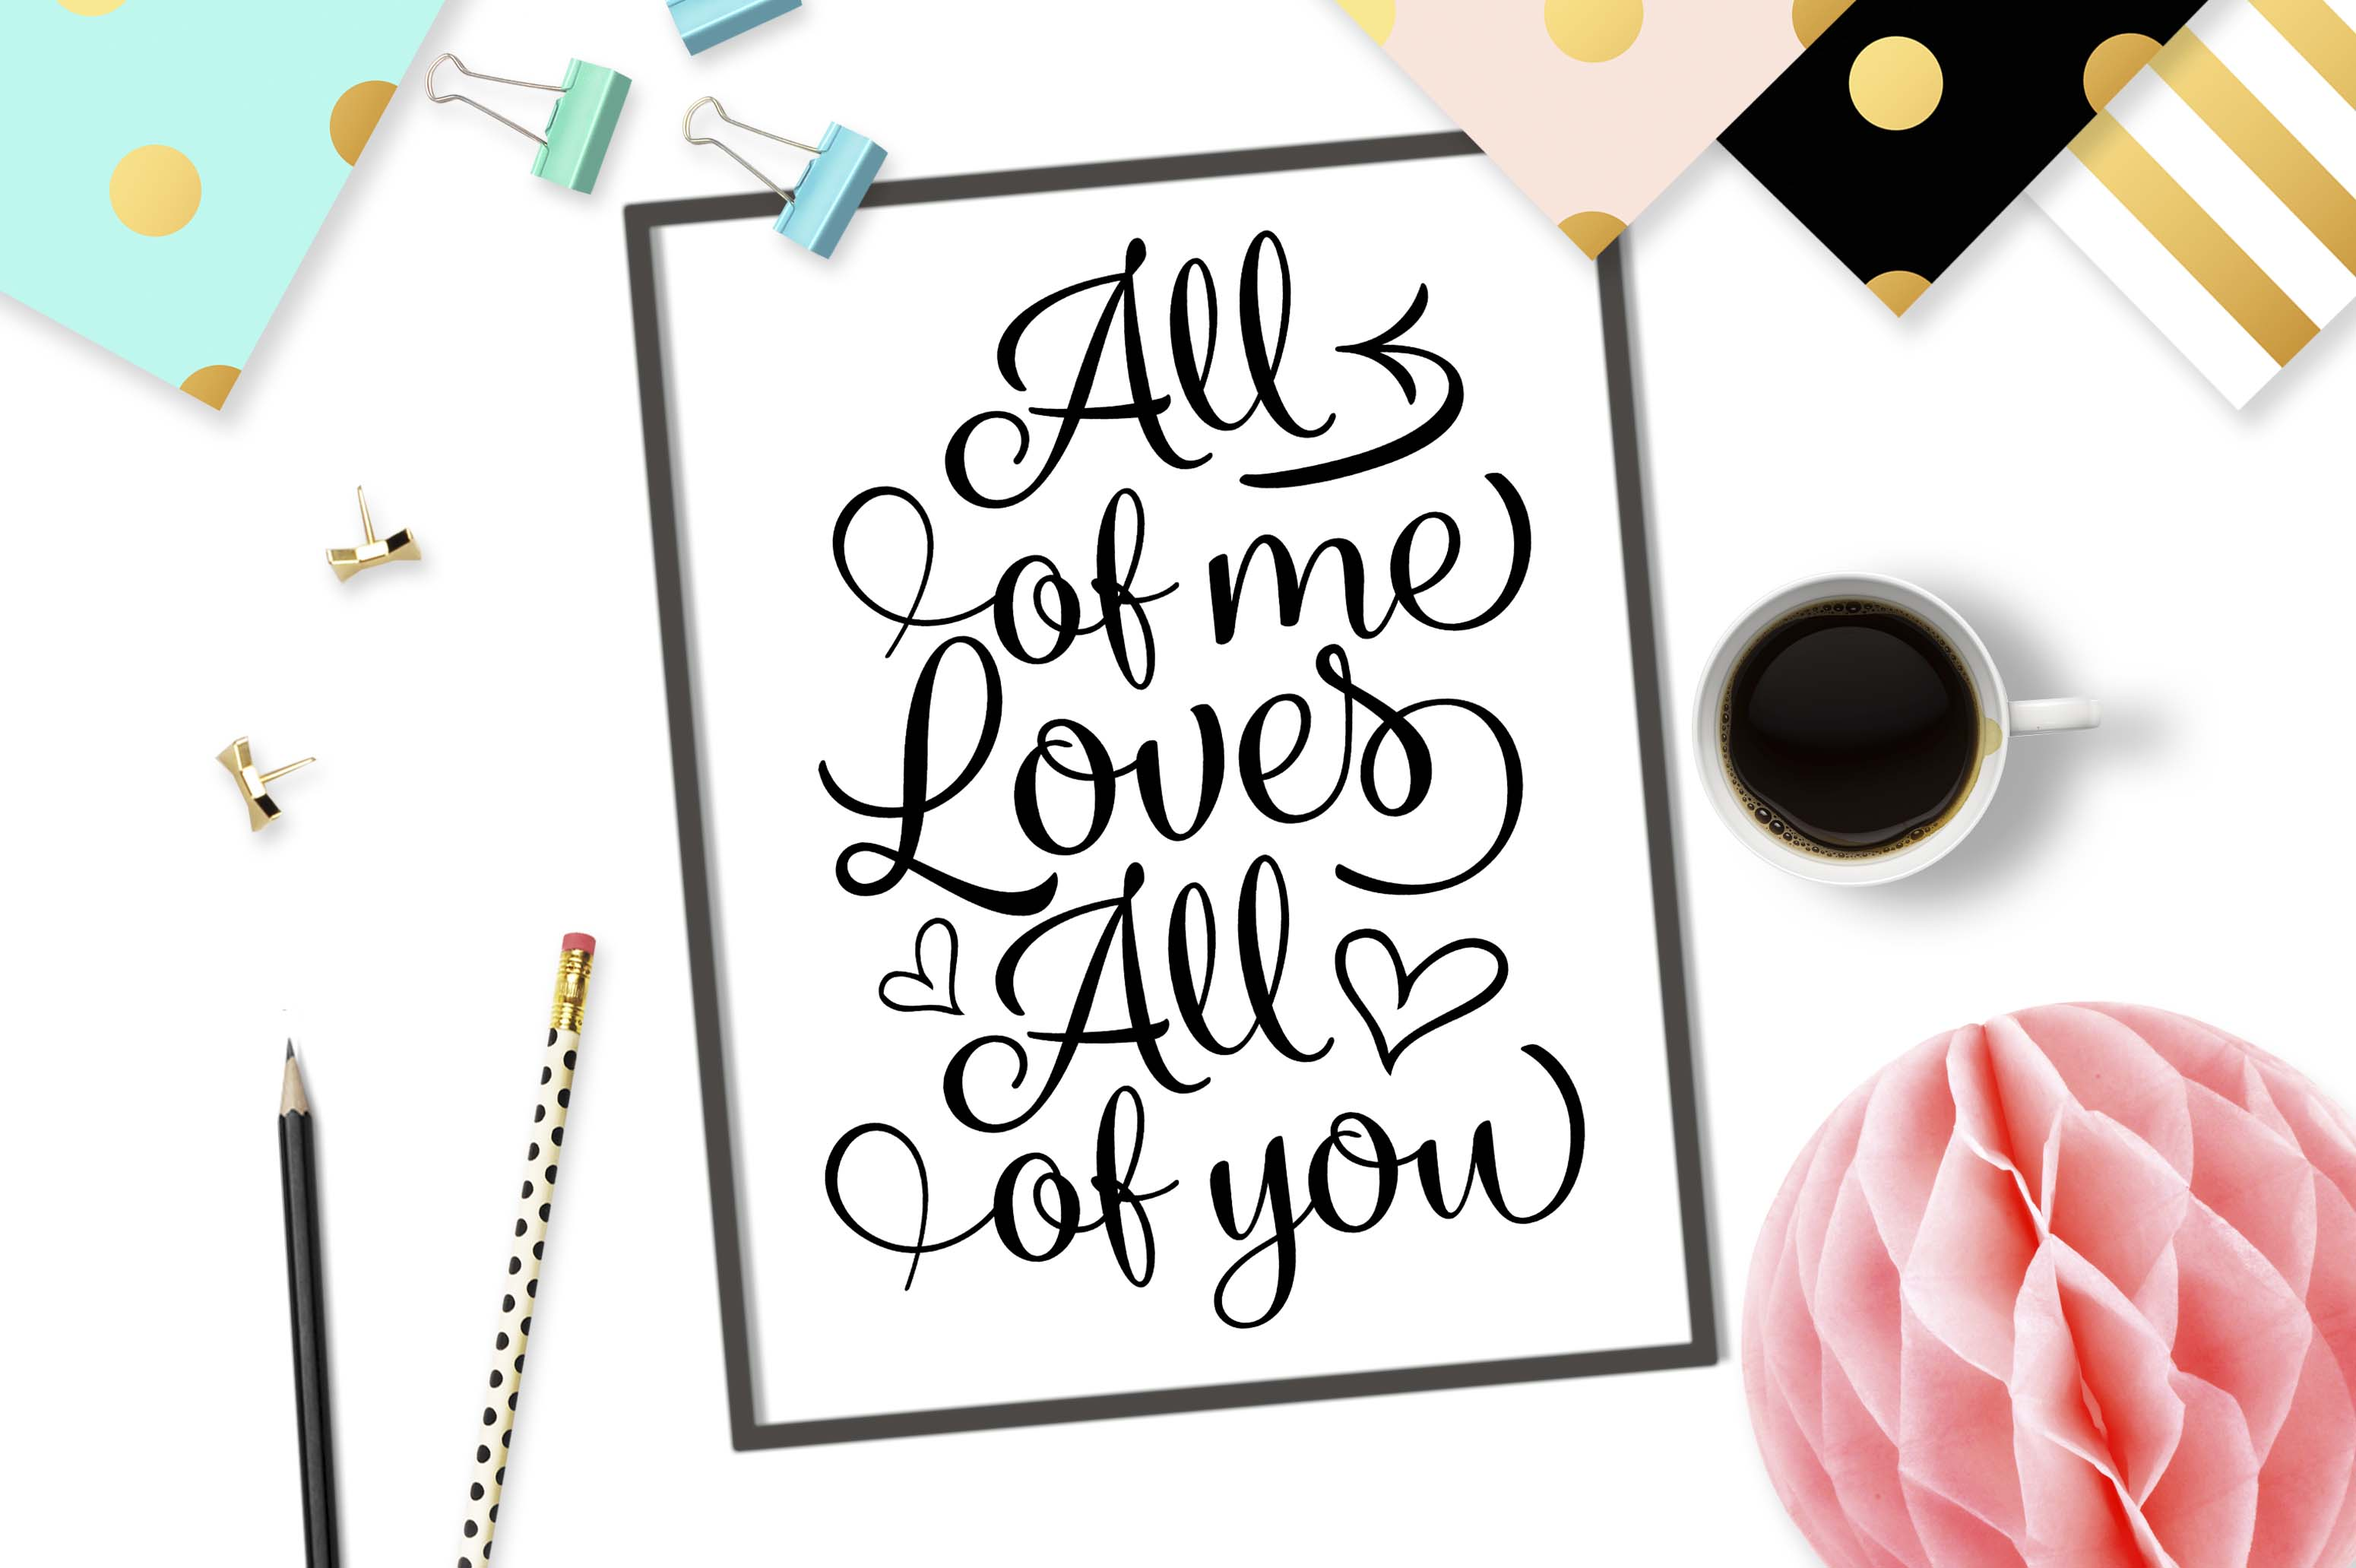 Download Free All Of Me Loves All Of You Graphic By Theblackcatprints for Cricut Explore, Silhouette and other cutting machines.